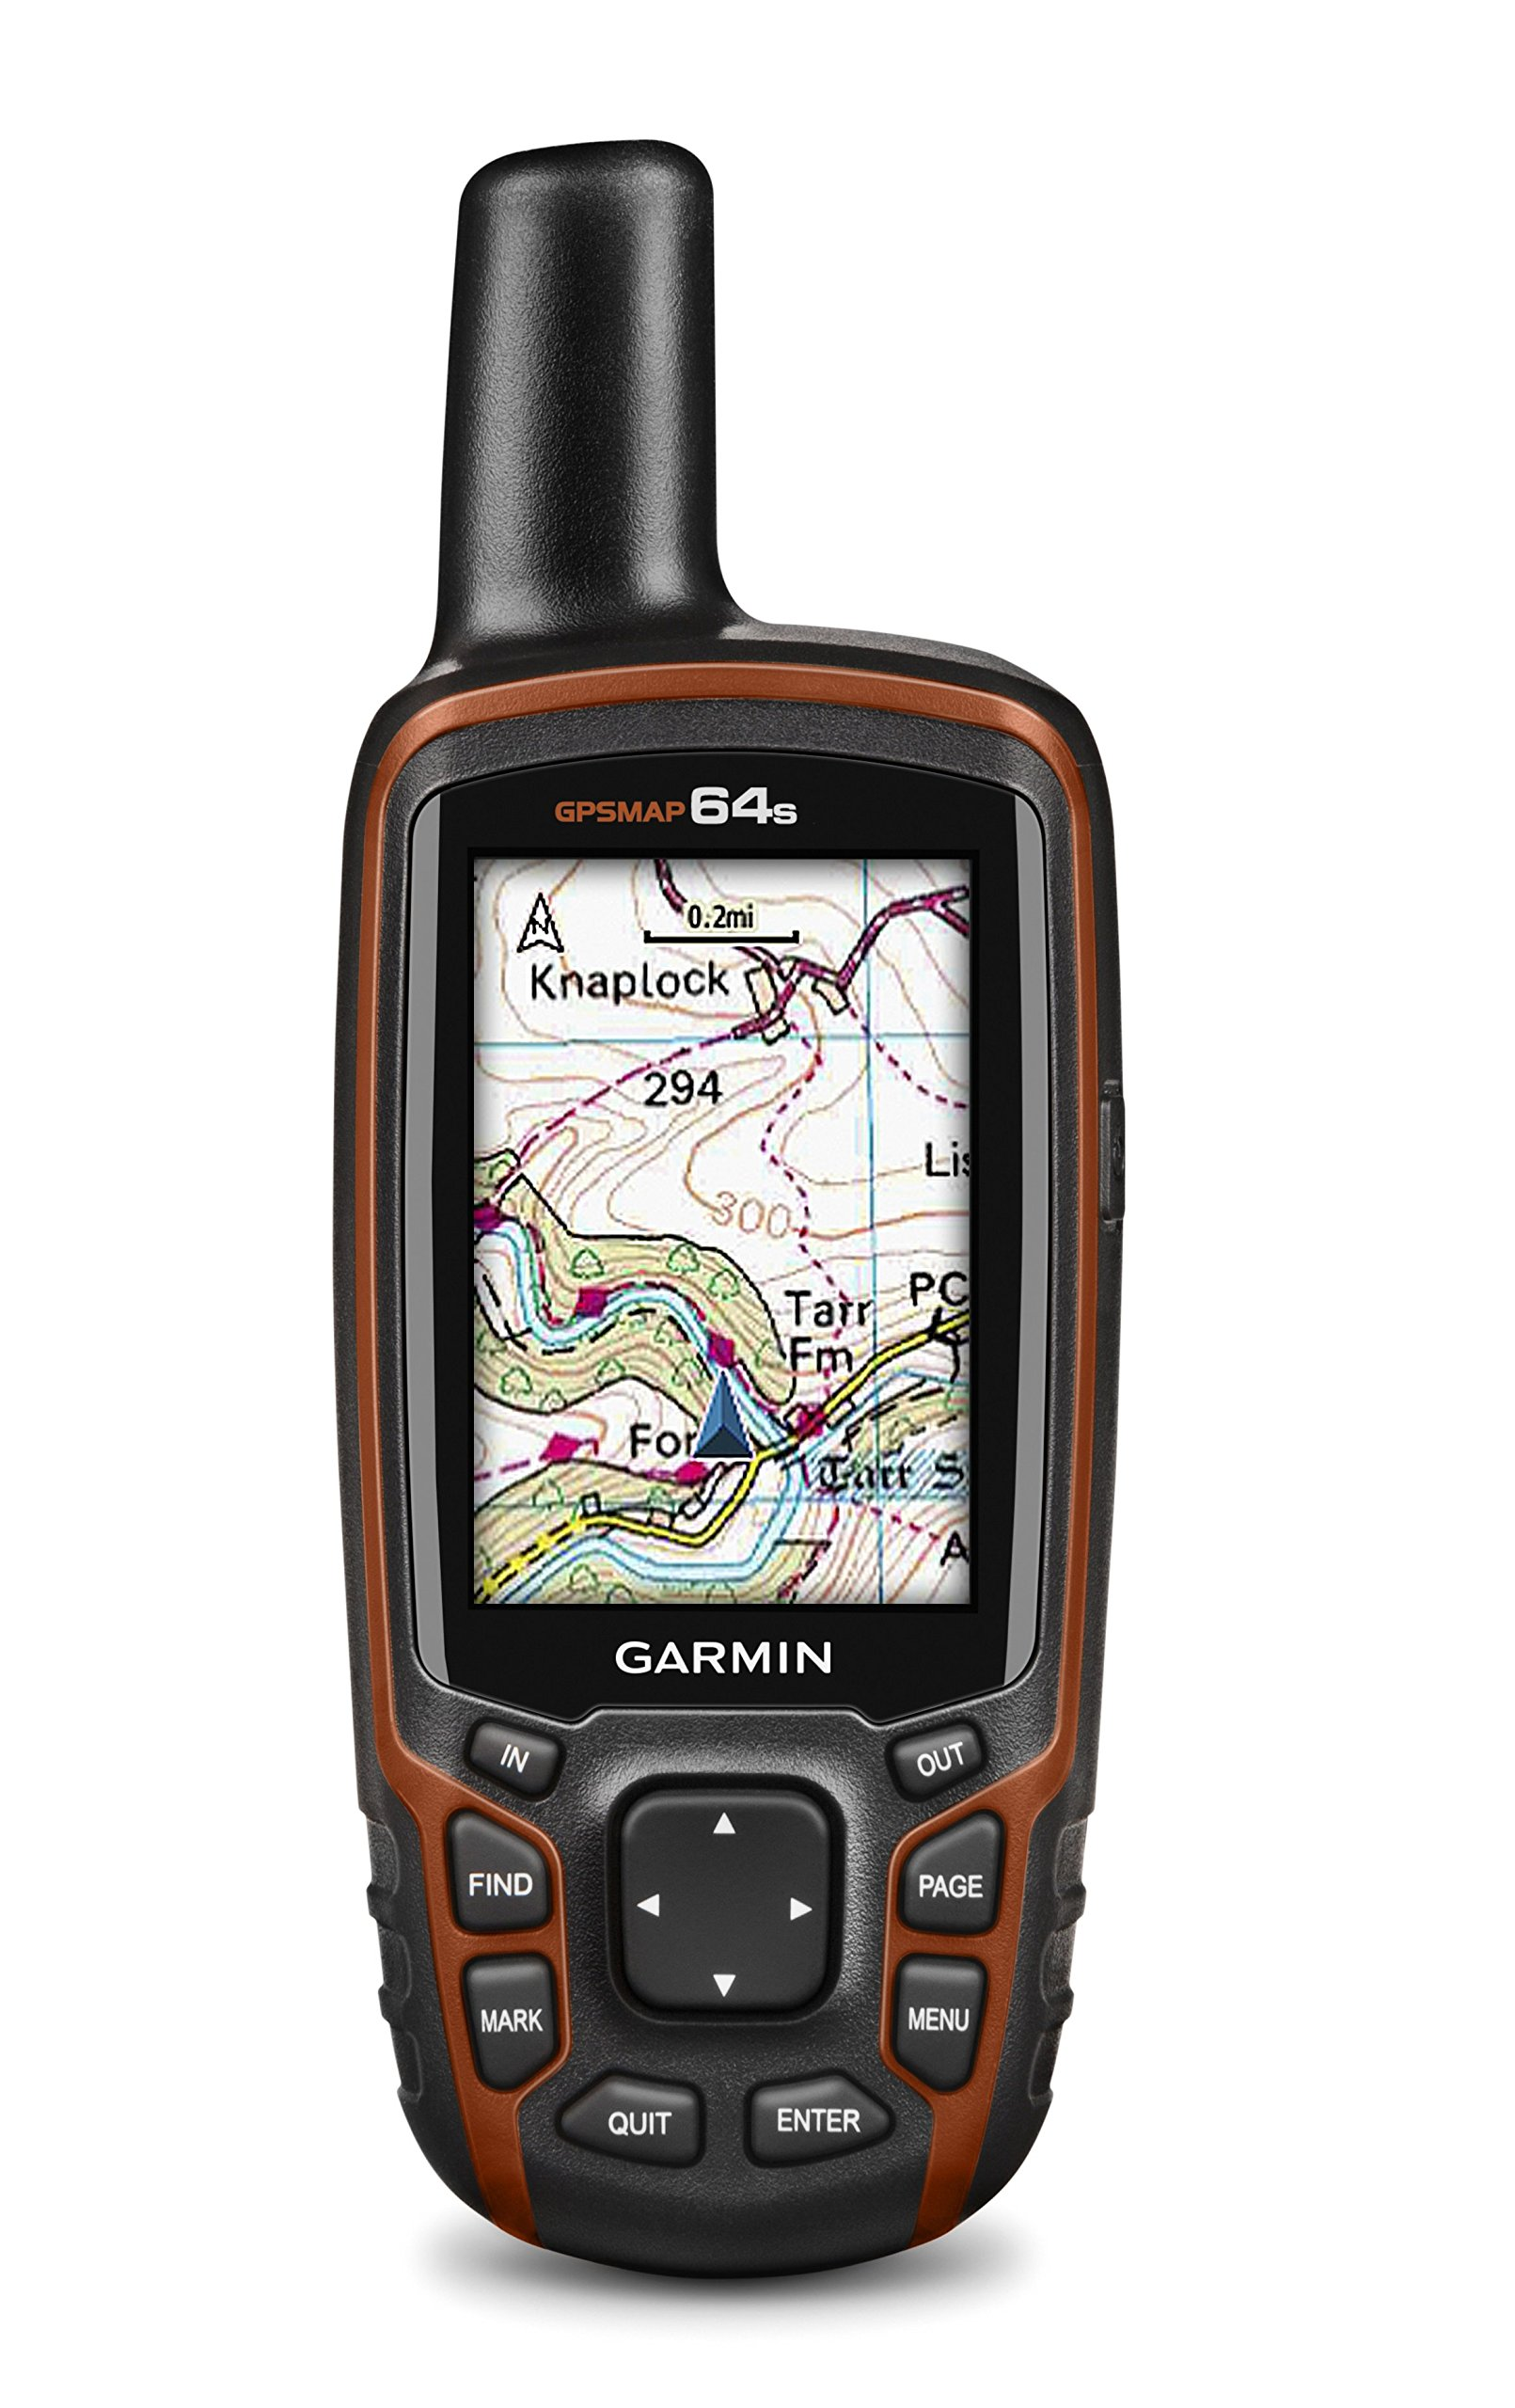 Garmin GPSMAP 64s Handheld Navigator,Black/Red 6